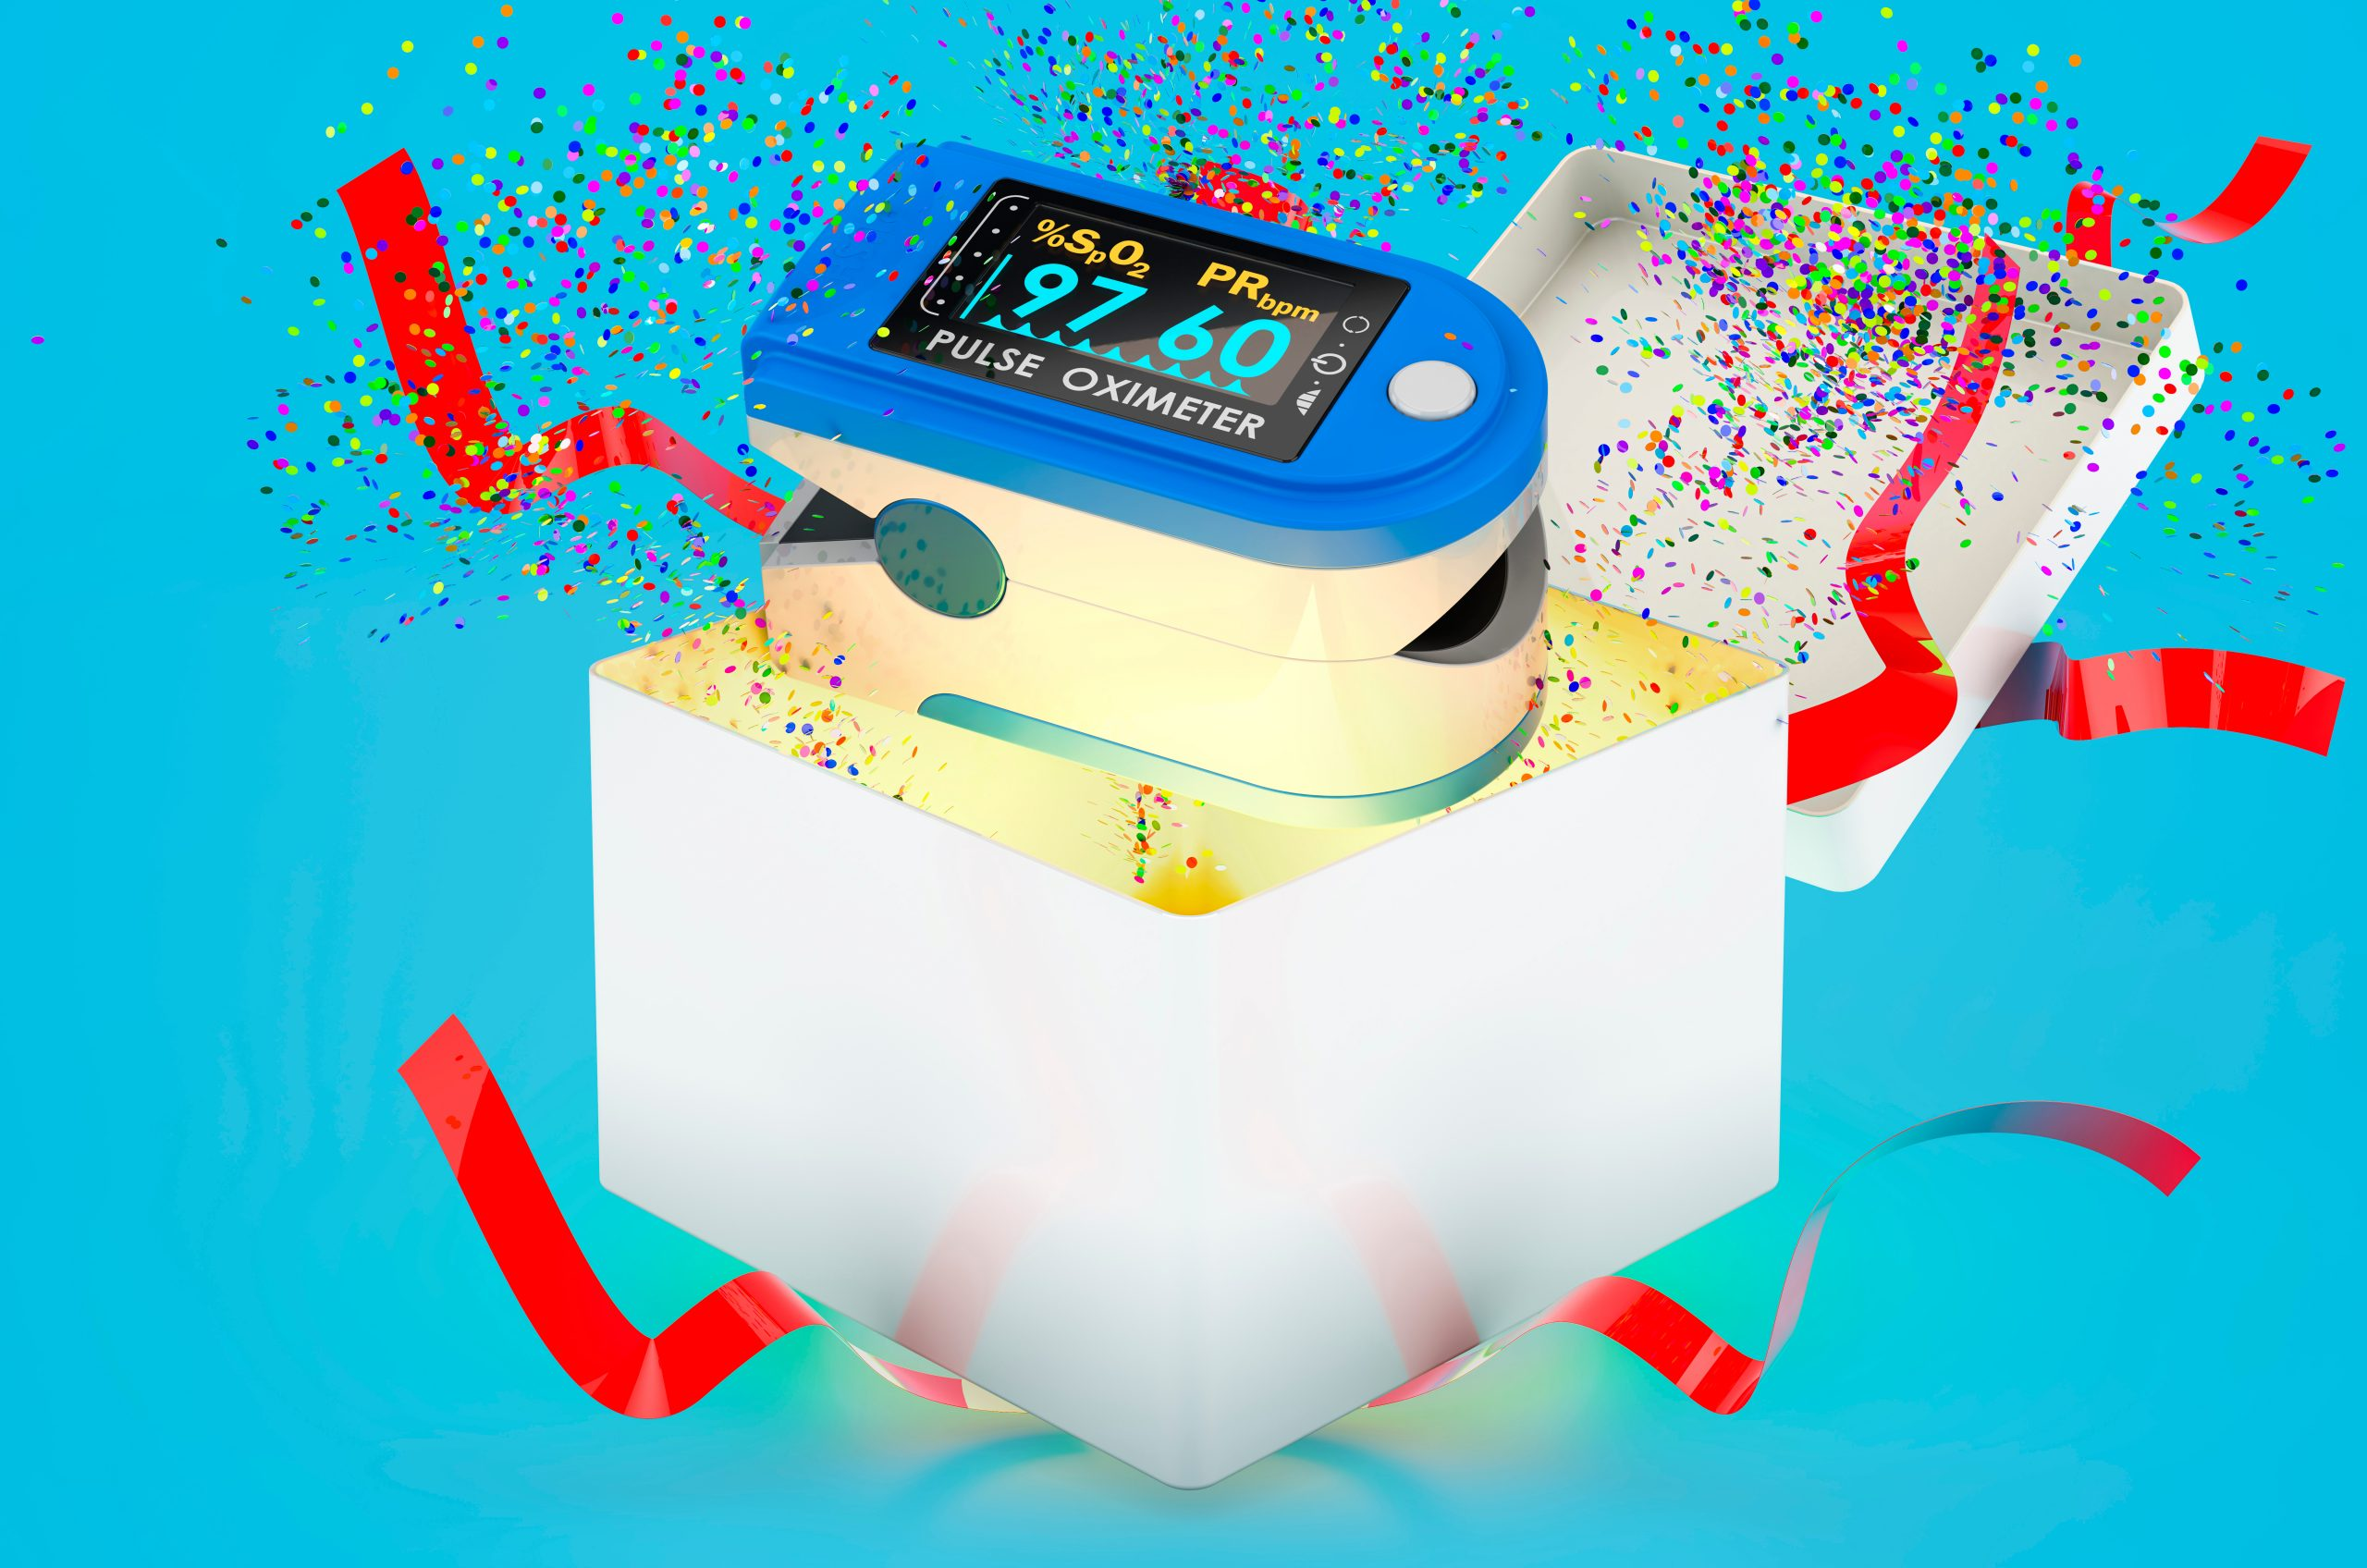 pulse oximeter in gift box